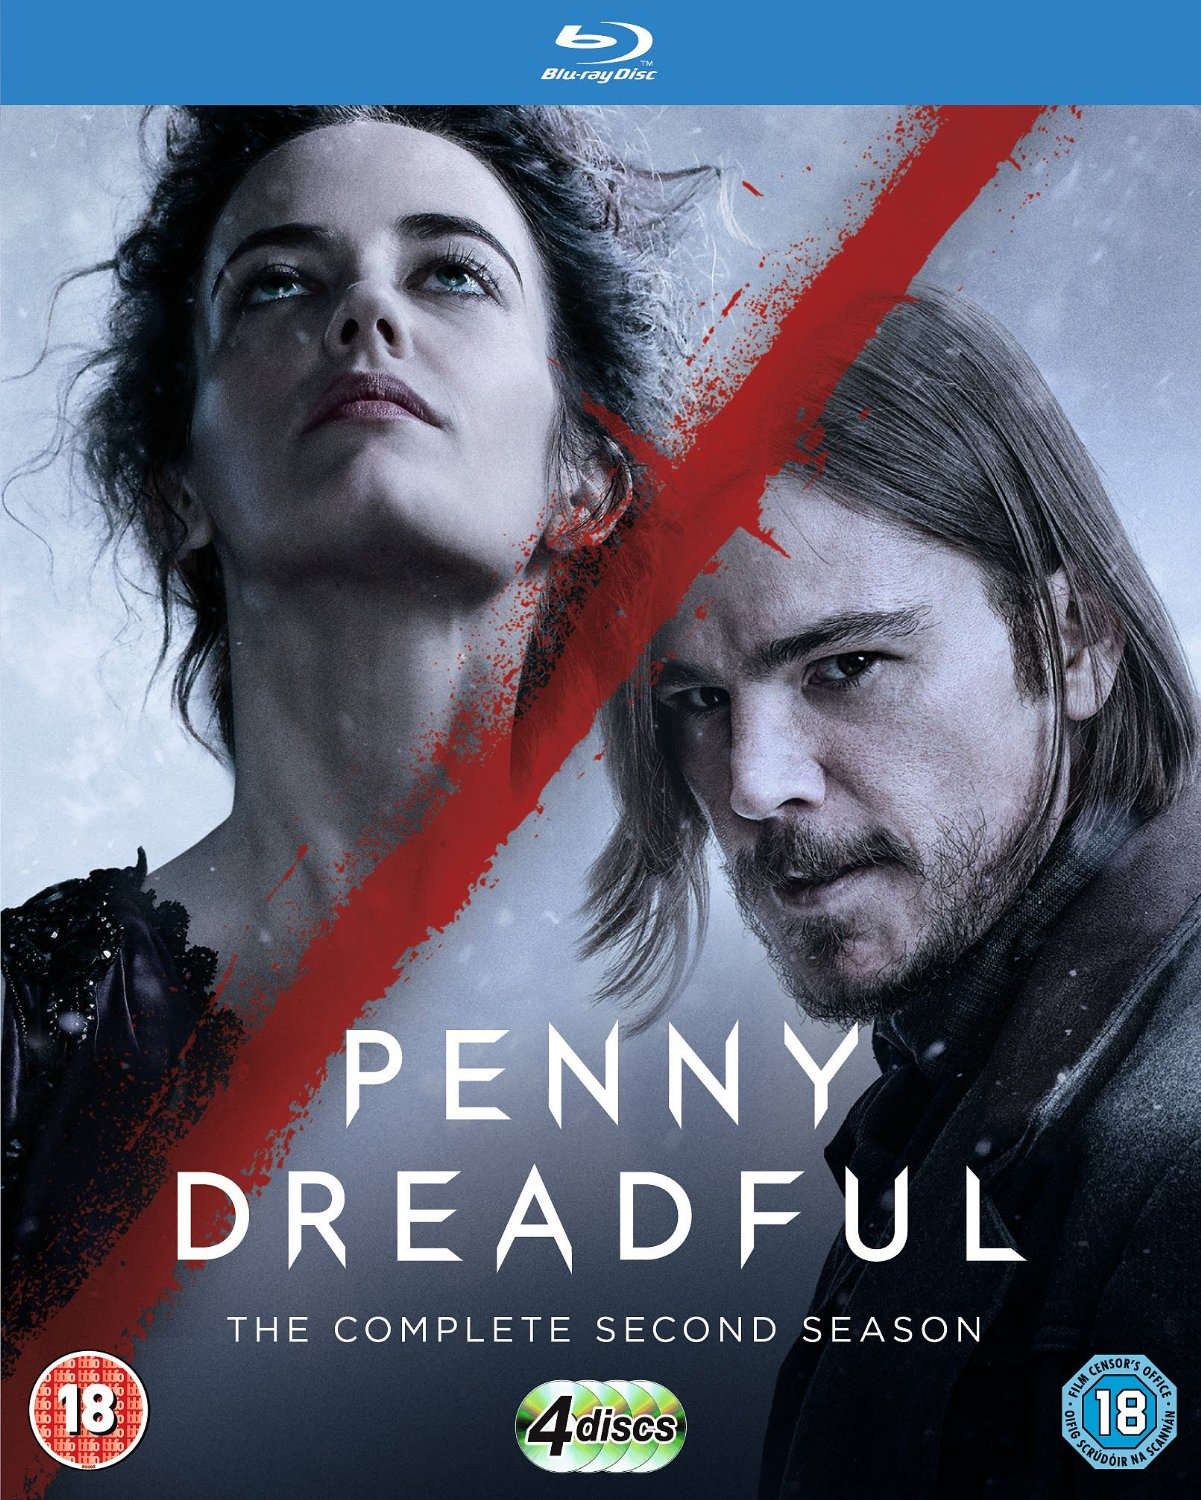 Penny Dreadful Season 2 Blu-ray review